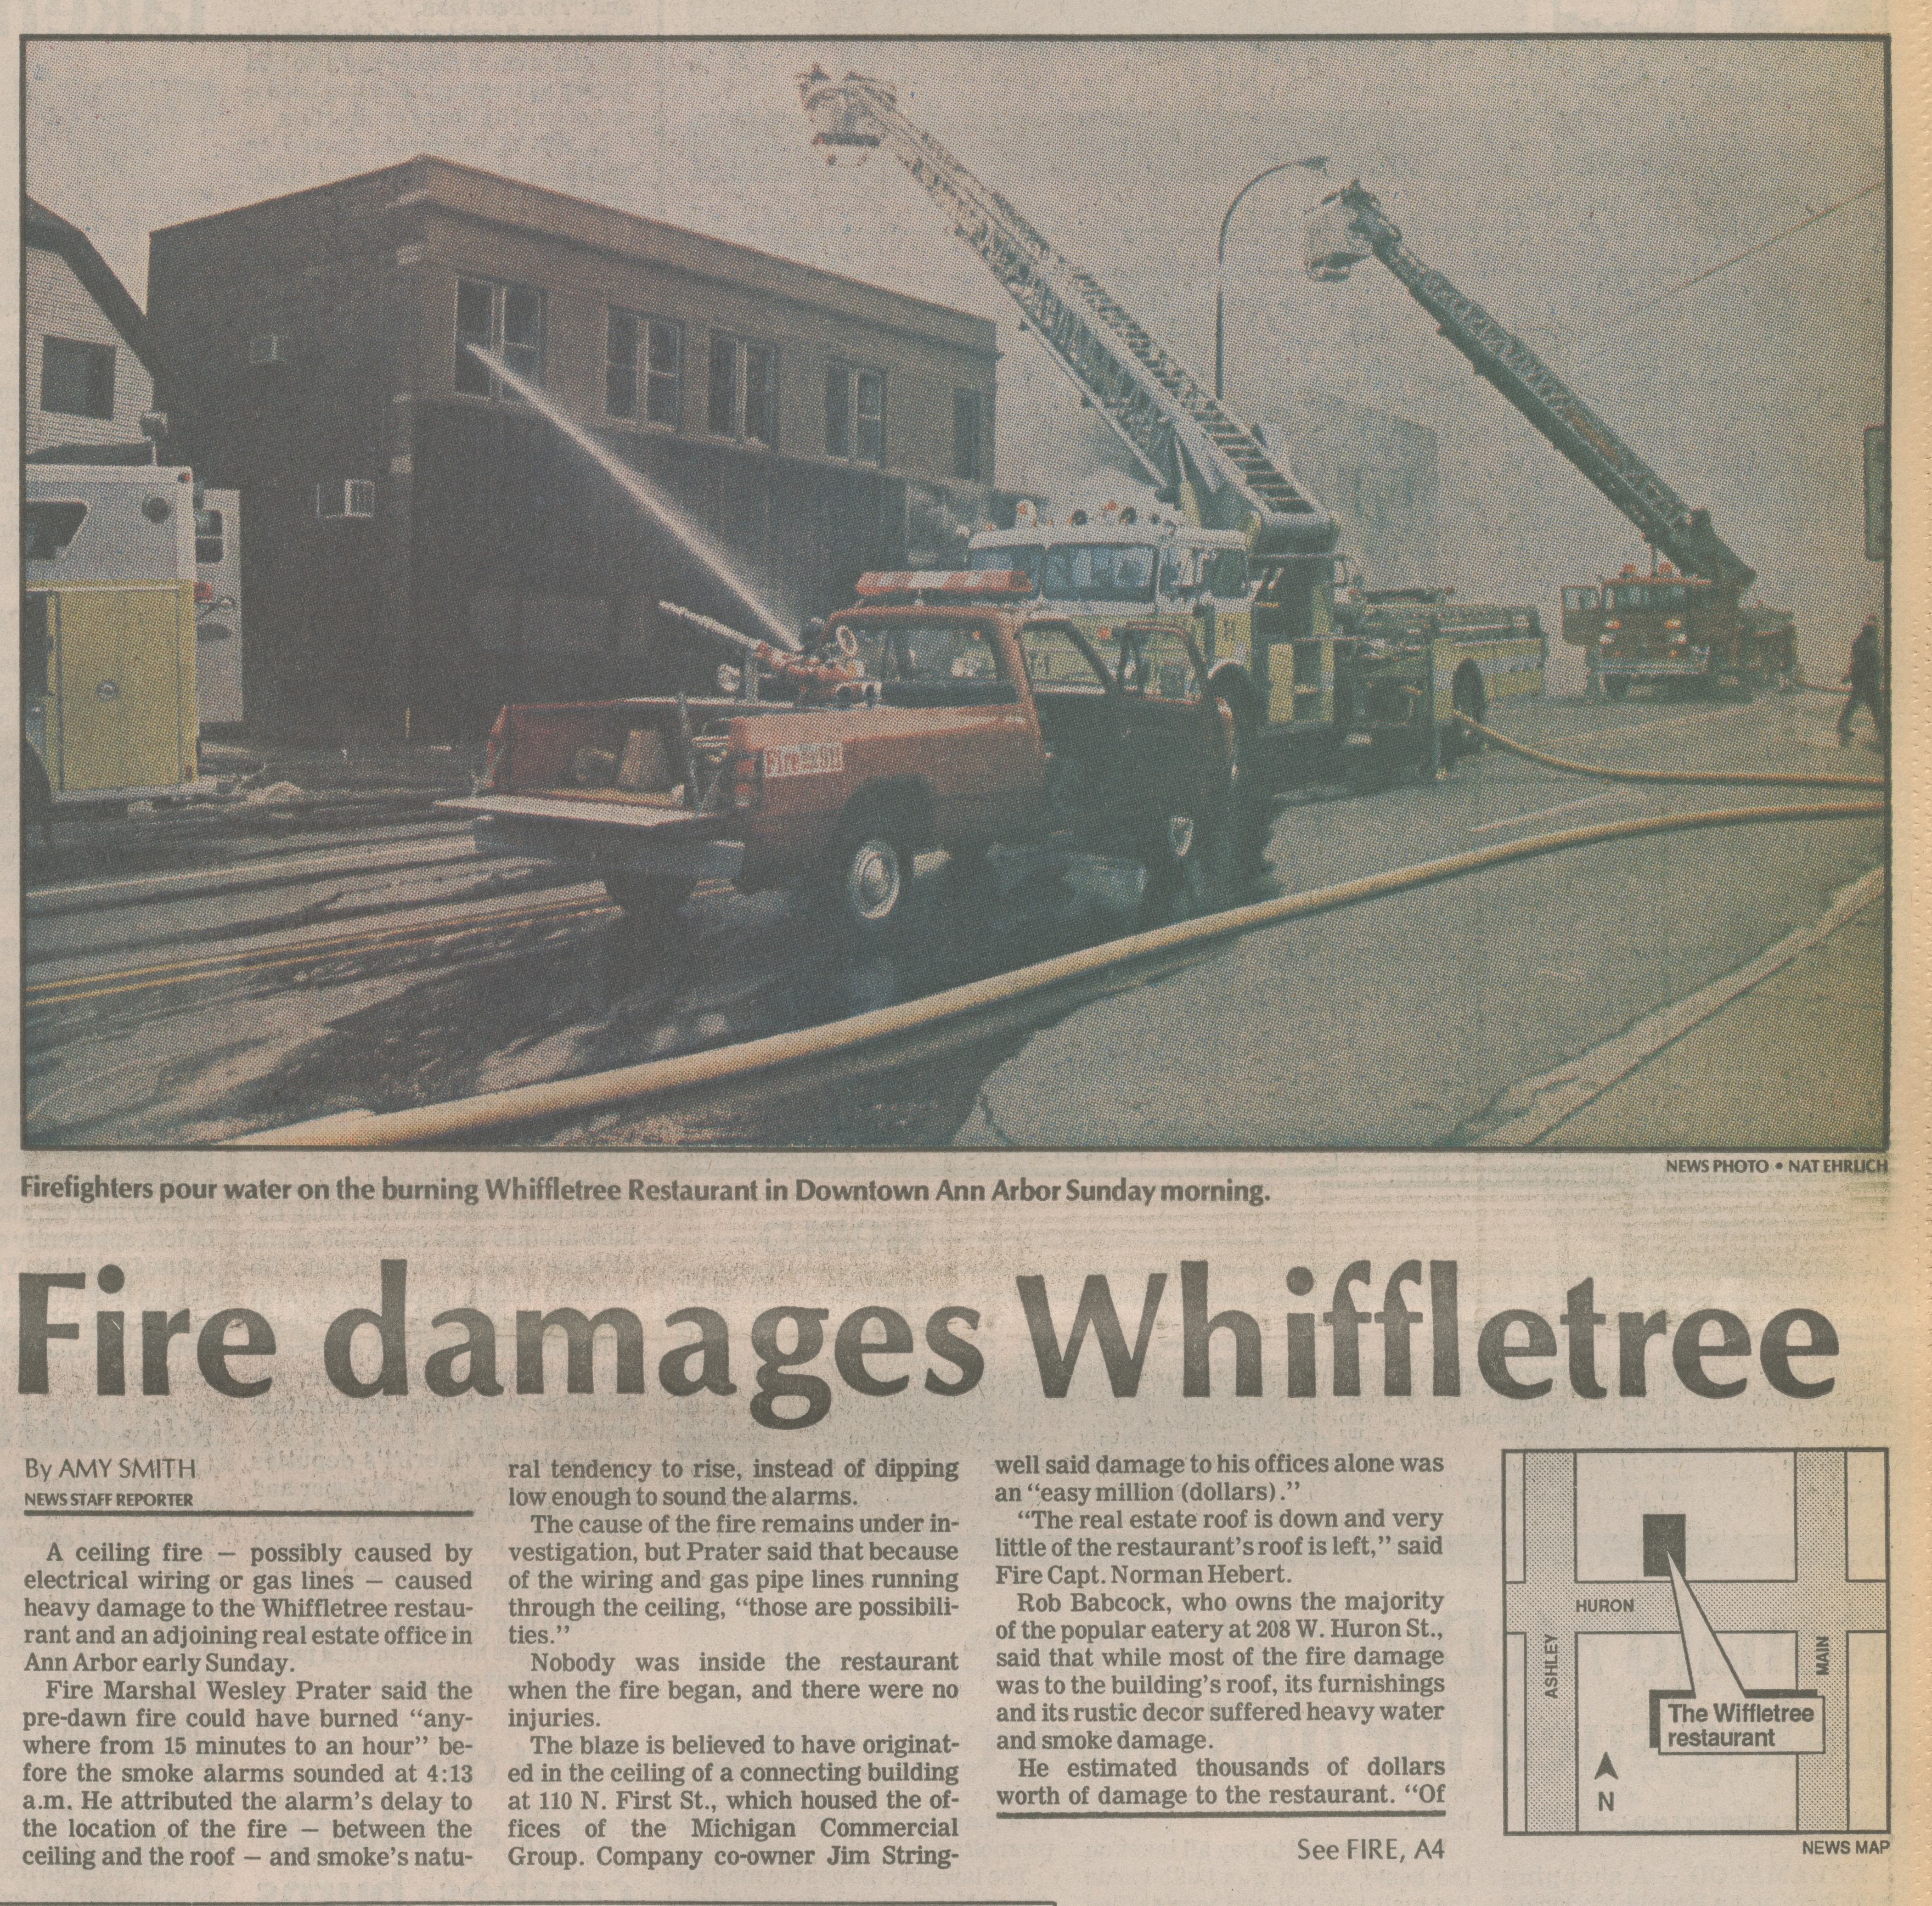 Fire damages Whiffletree image